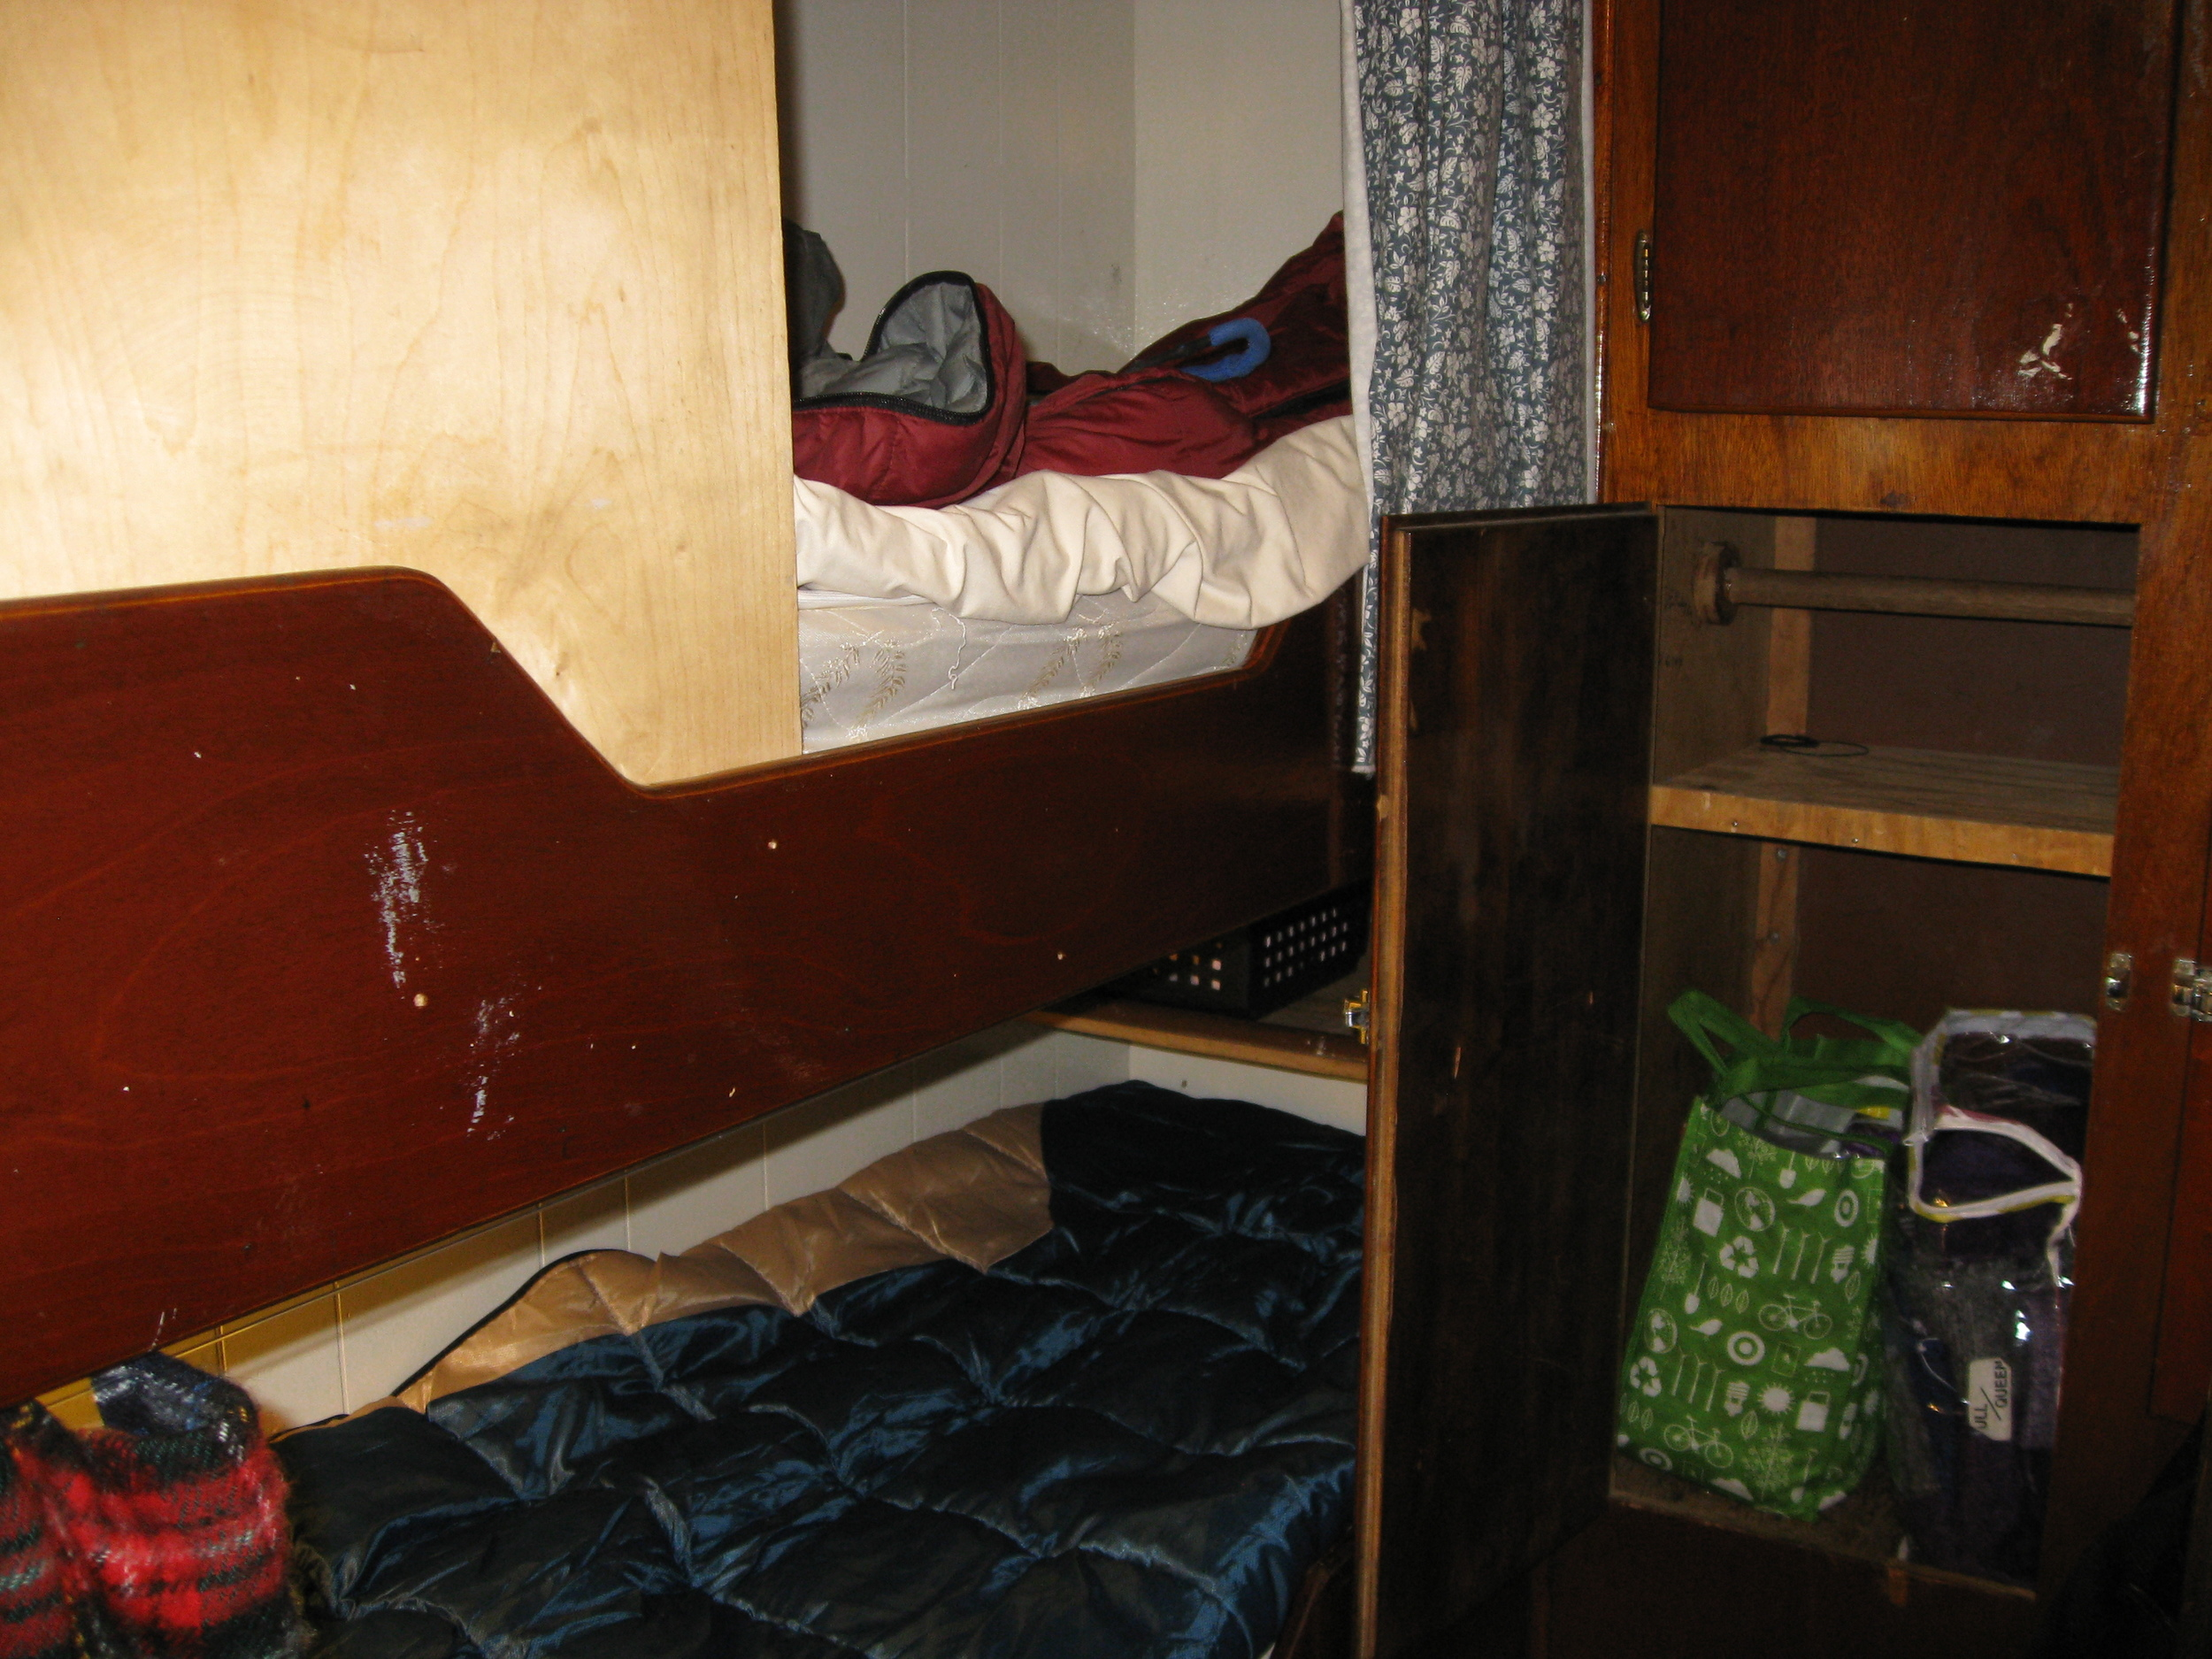 My bunk for 10 days…pretty cozy